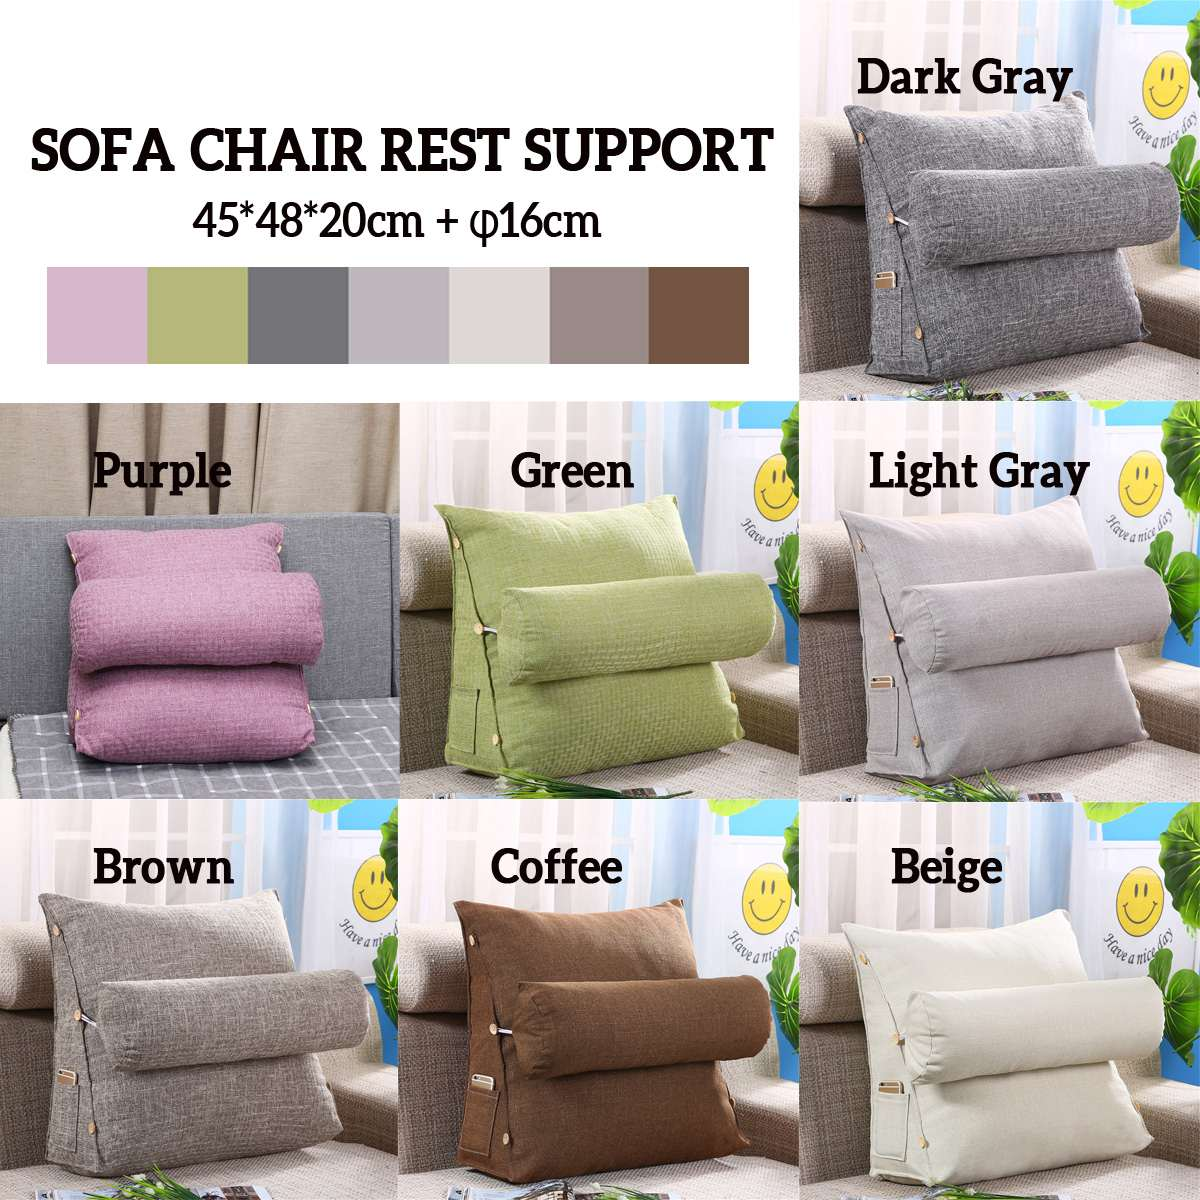 Triangle Back Pillow Sofa Bed Chair Back Rest Backrest Cushion Support Decor